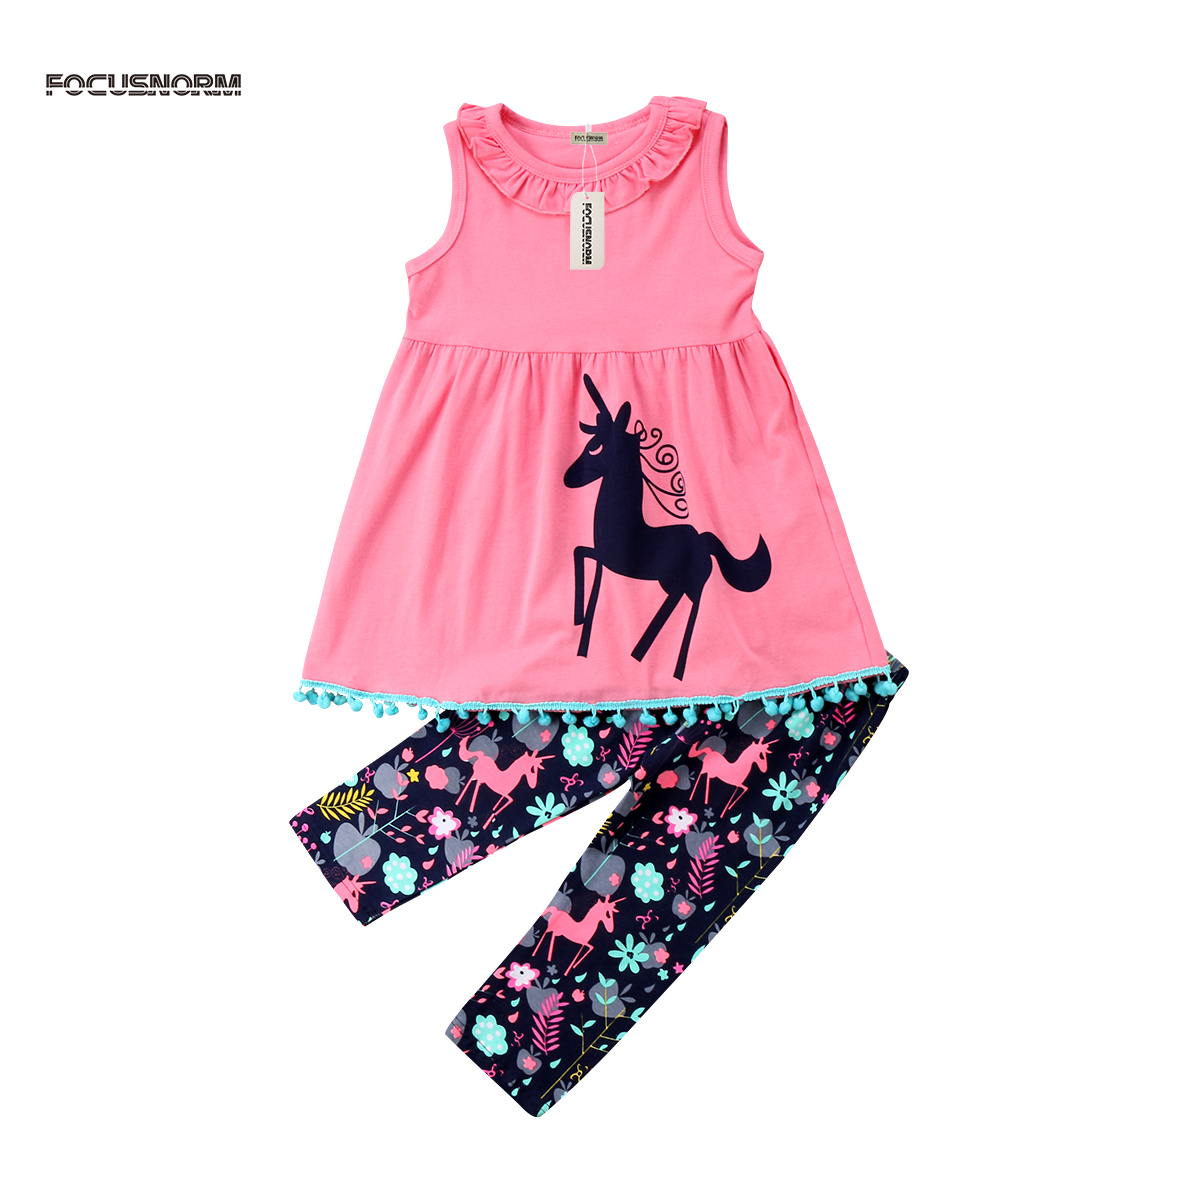 Kids Baby Girls Outfit Set Unicorn Clothes Sleeveless Vest Dress Tops T-shirt+Long Trousers Pants 2Pcs flower sleeveless vest t shirt tops vest shorts pants outfit girl clothes set 2pcs baby children girls kids clothing bow knot